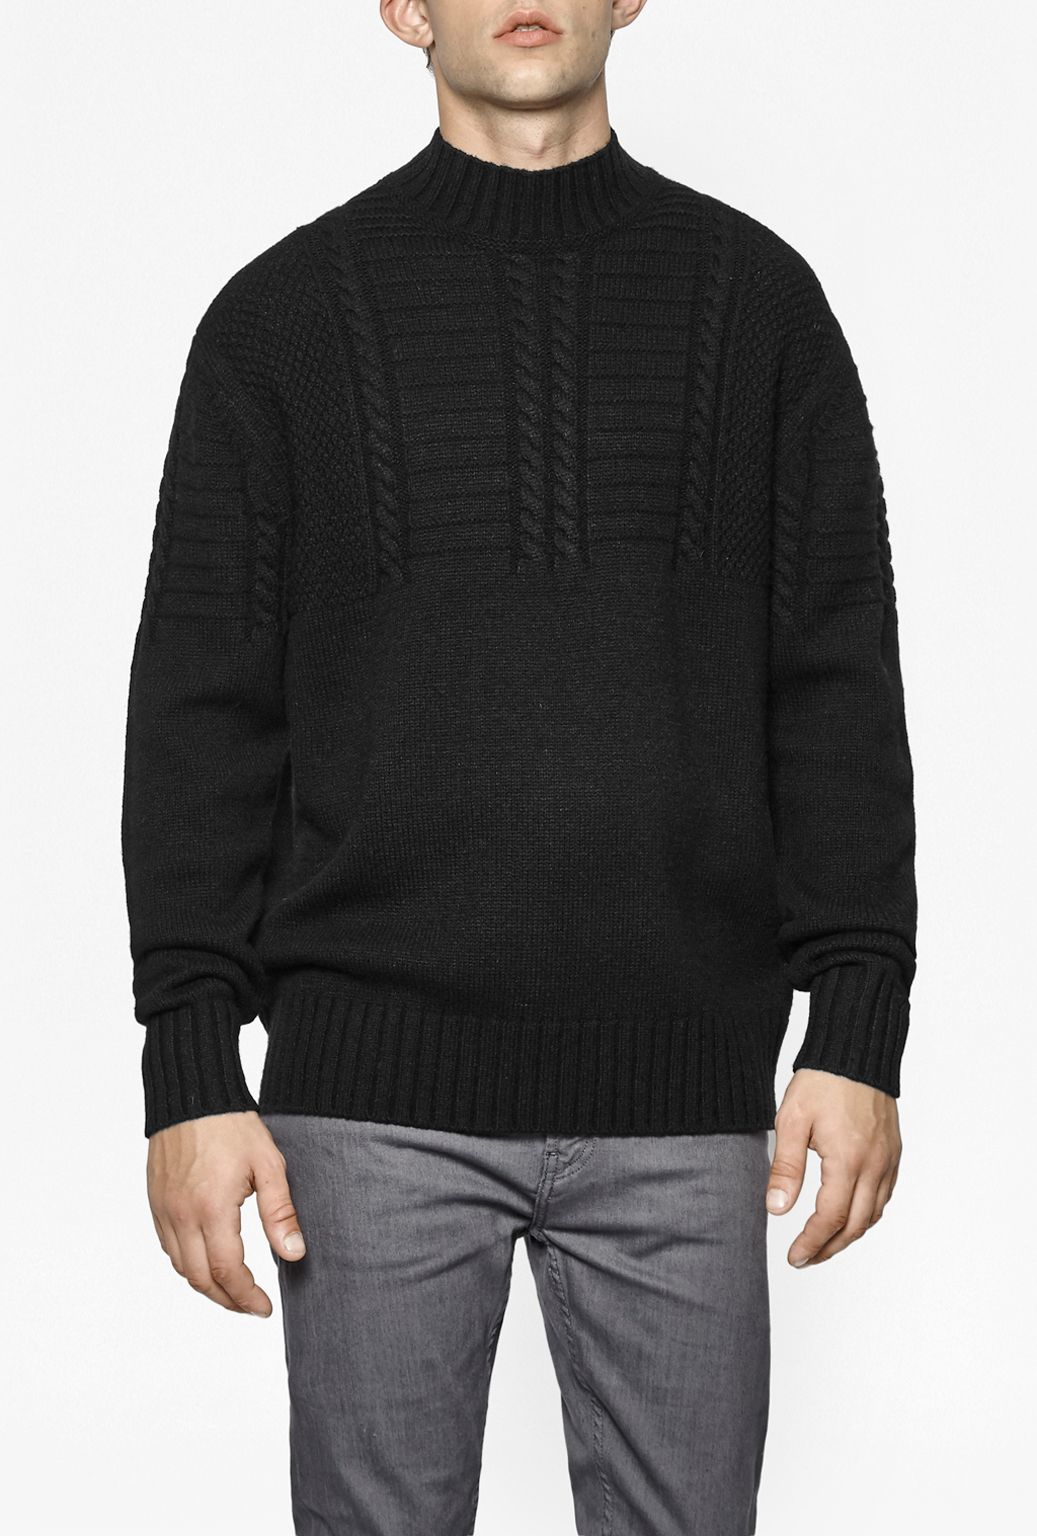 French Connection Fisherman Cable Knit in Black for Men